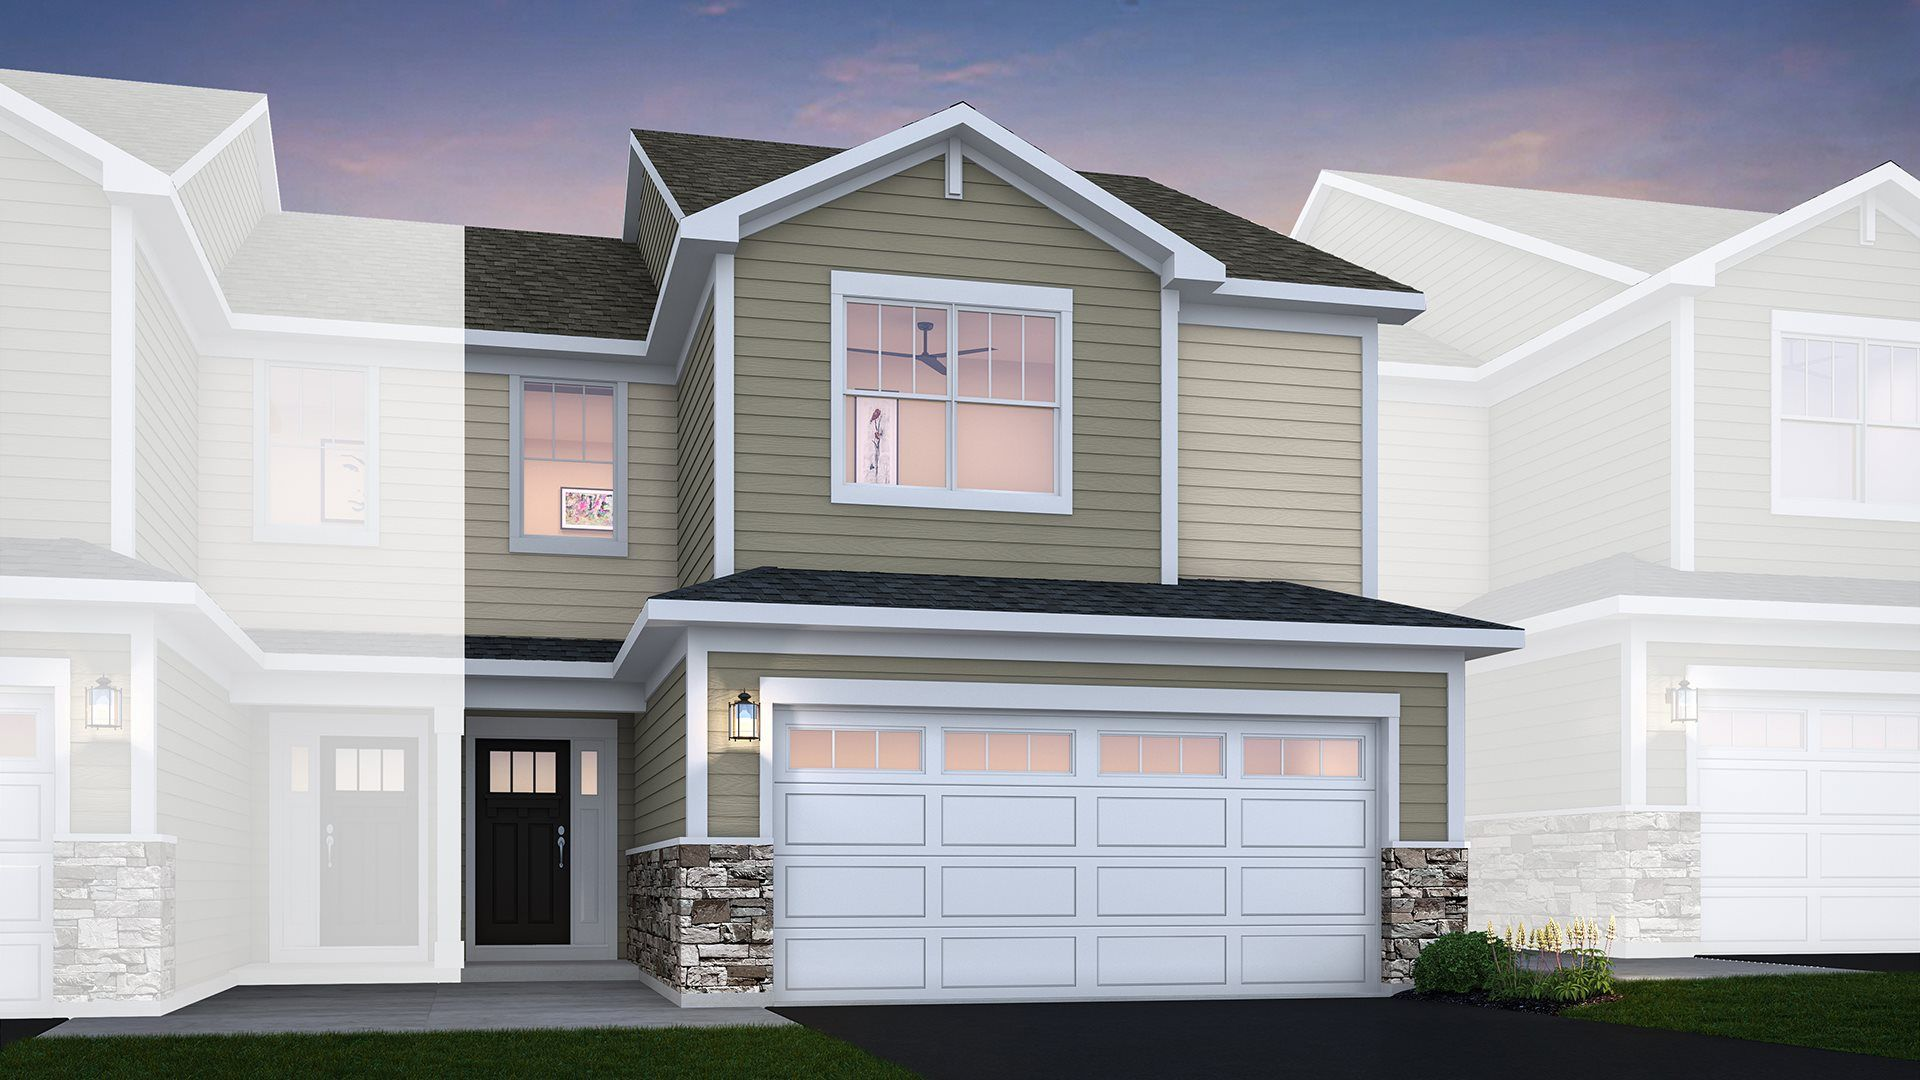 Charlotte floorplan with traditional exterior